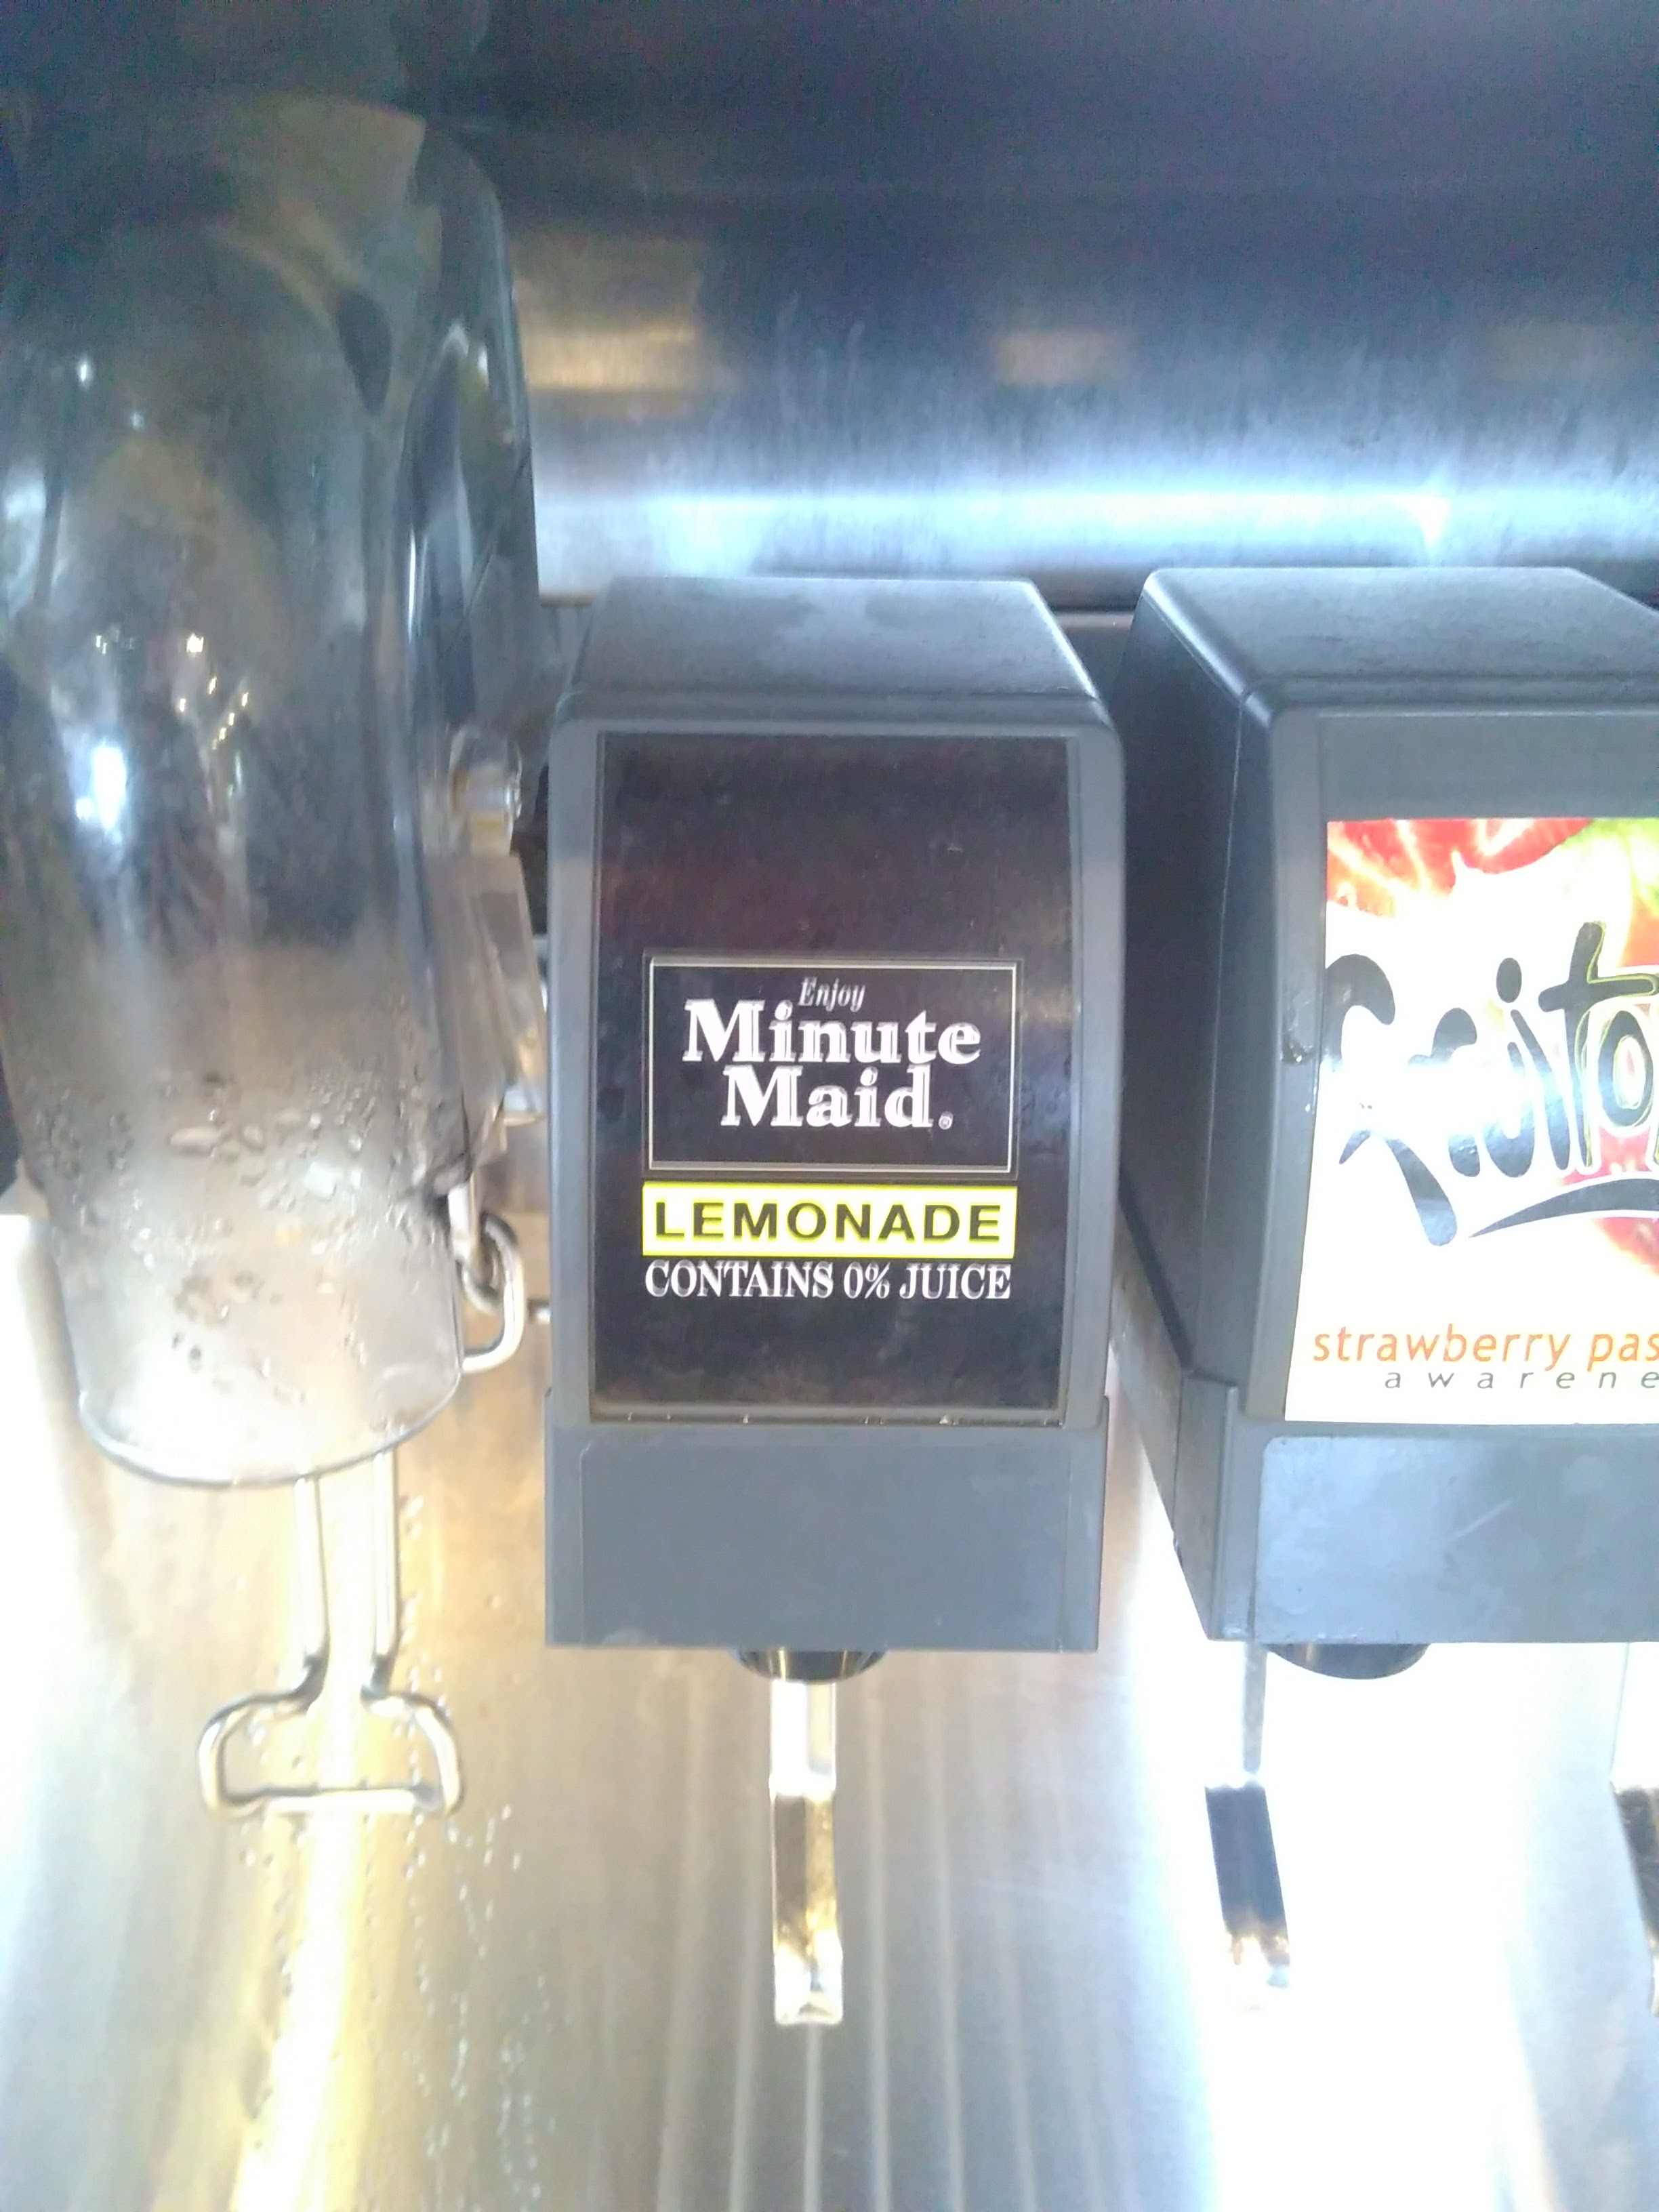 "A drinks dispenser. The label reads: ""Minute Maid Lemonade, 0% Juice"""